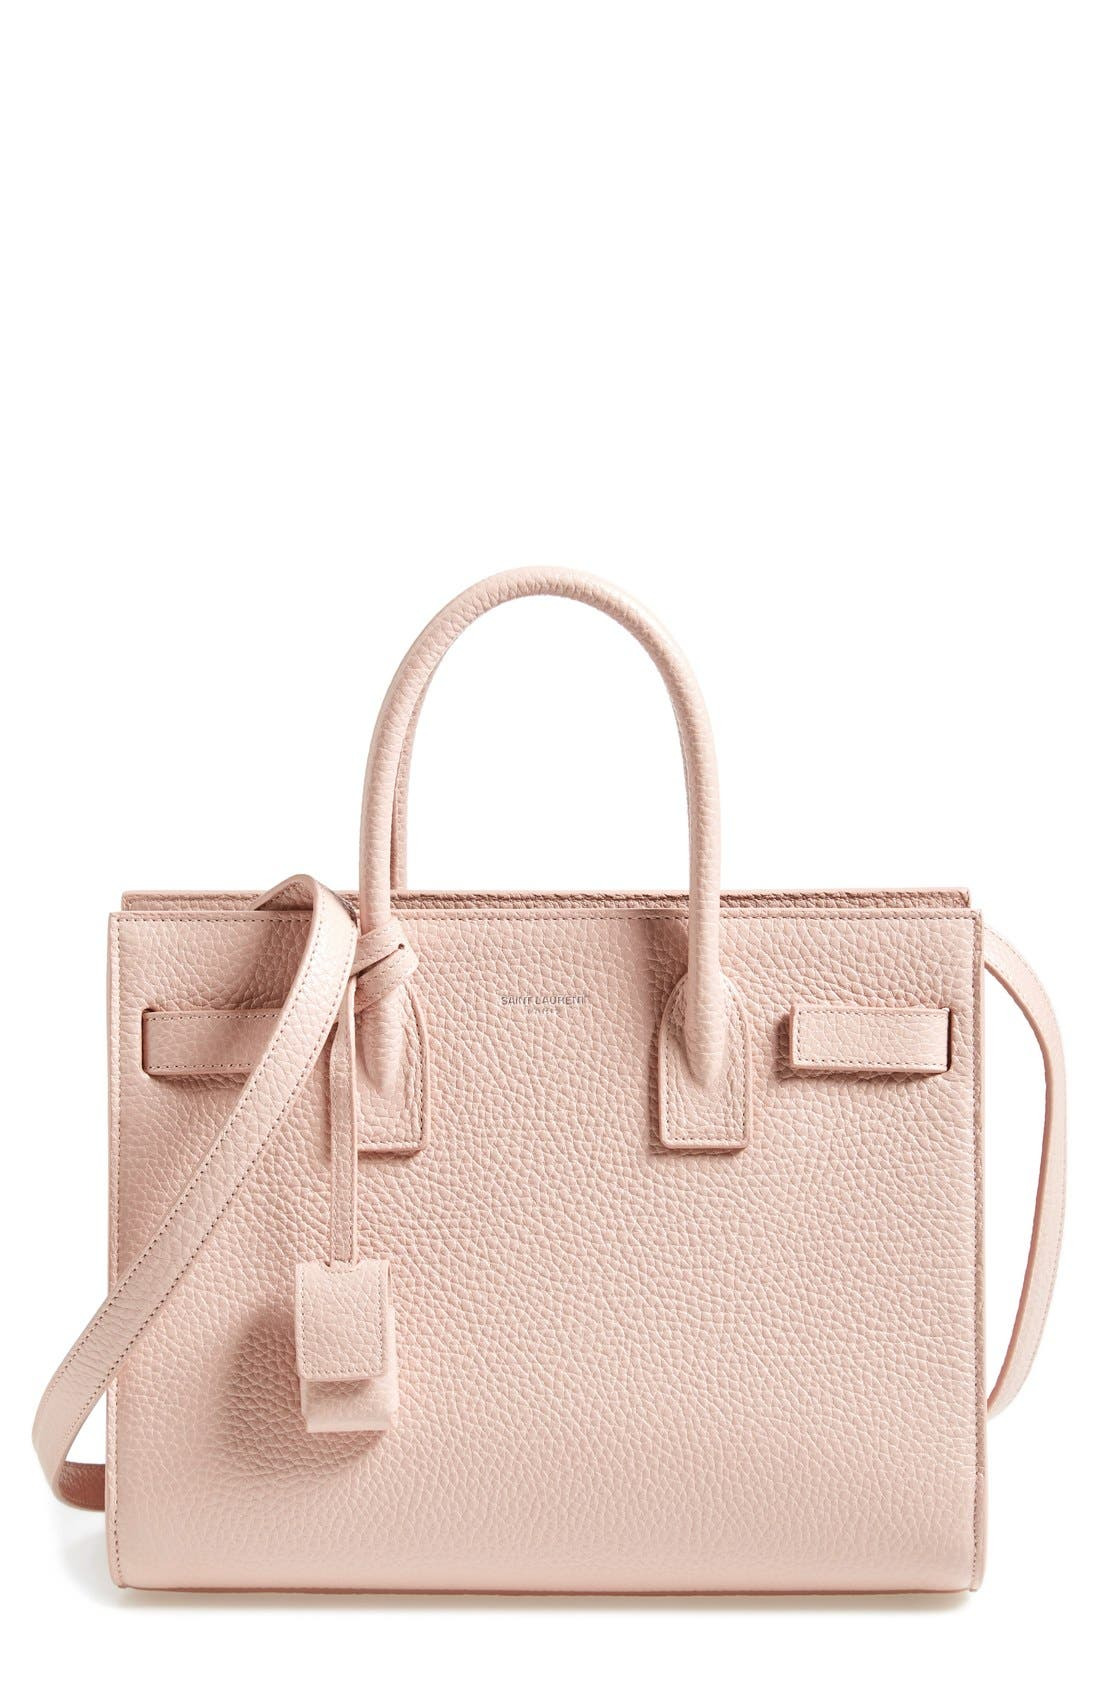 Alternate Image 1 Selected - Saint Laurent 'Baby Sac de Jour' Grained Calfskin Leather Tote